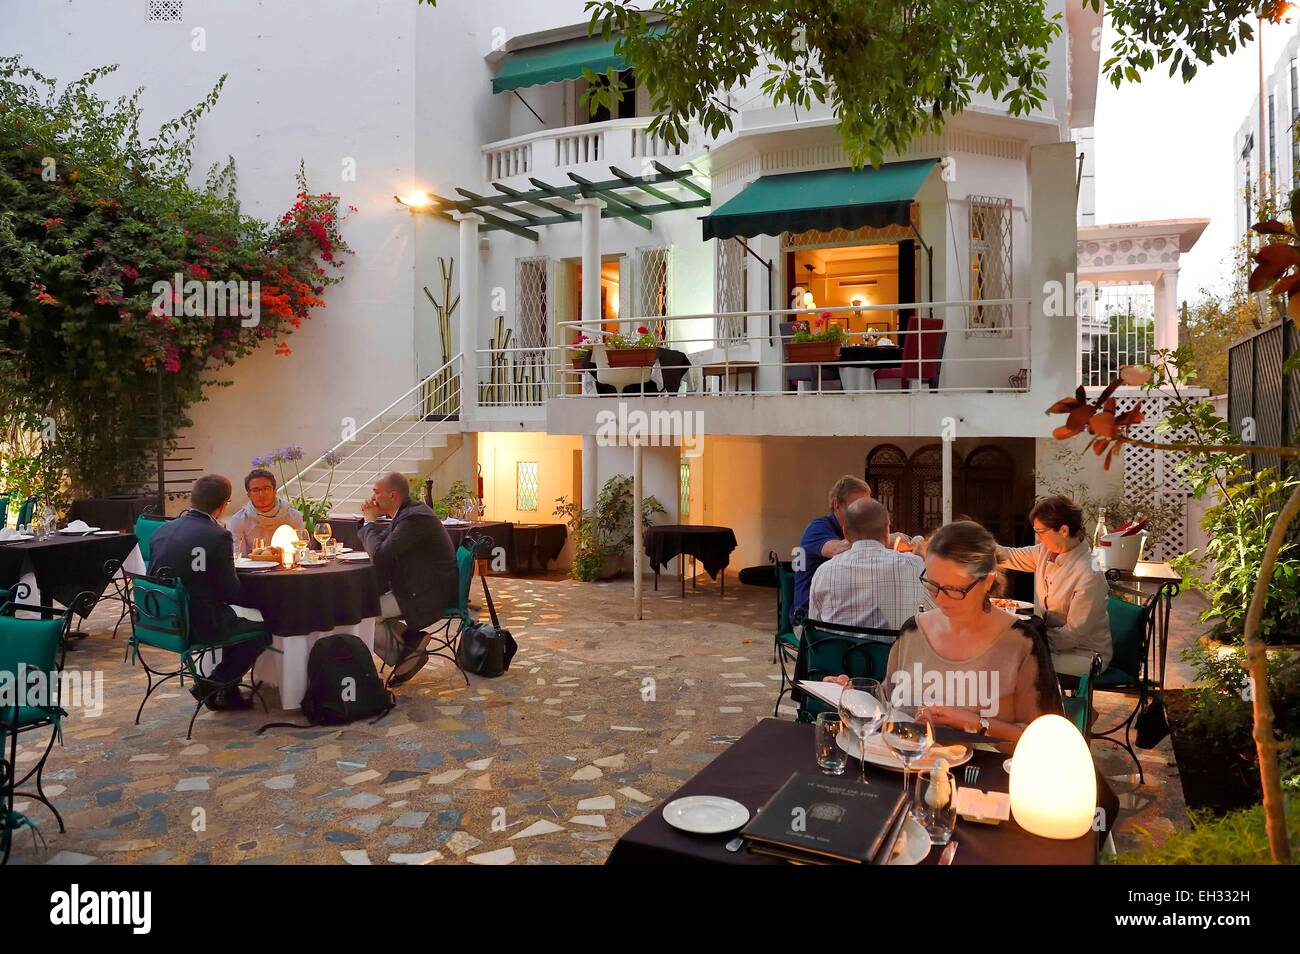 Maroc, Casablanca, restaurant le rouget de l'Isle Photo Stock